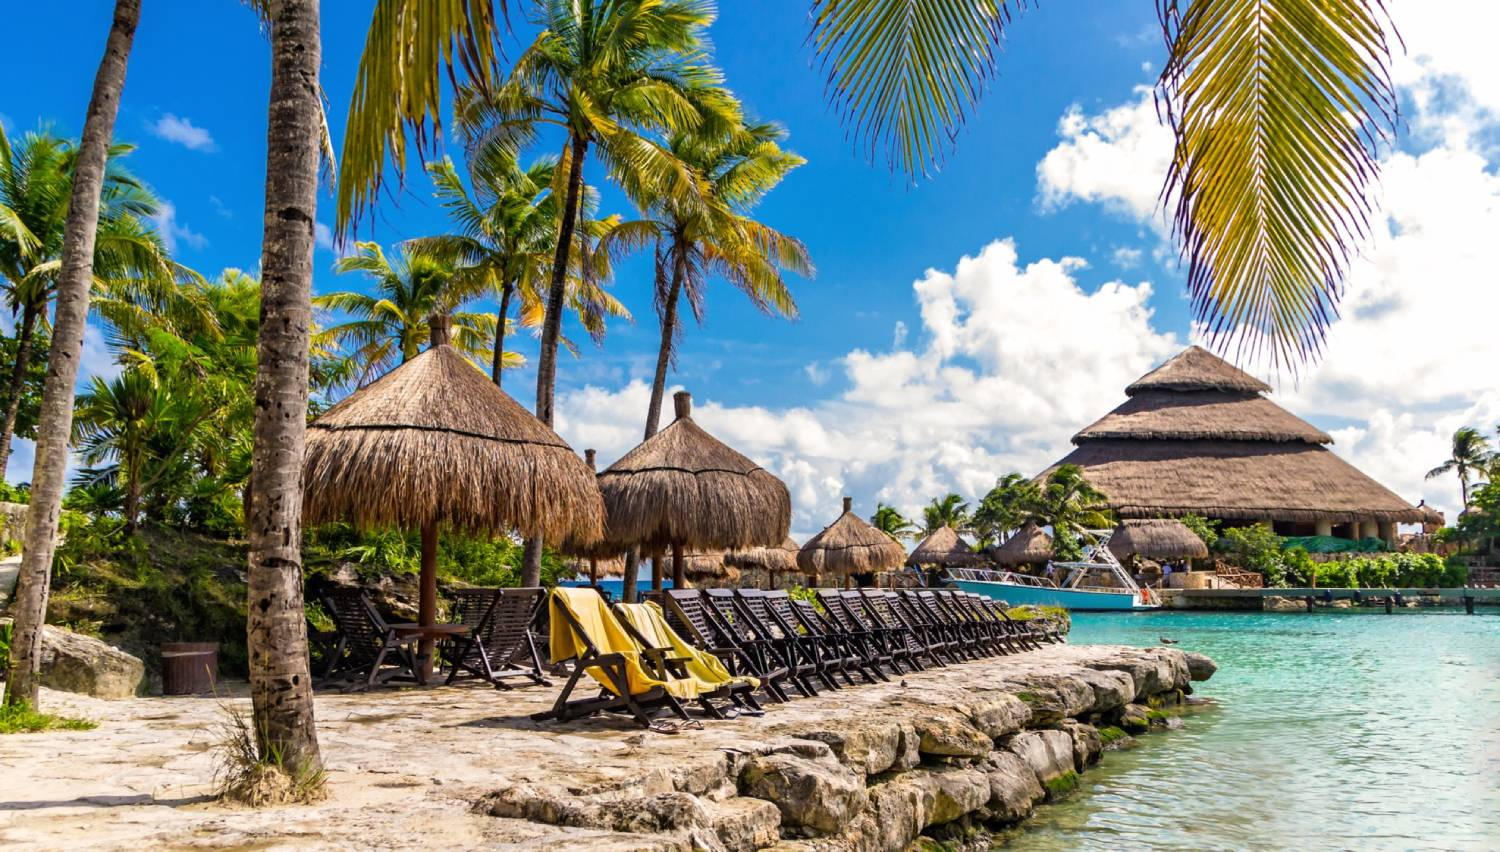 Xcaret - Things To Do In Cancun